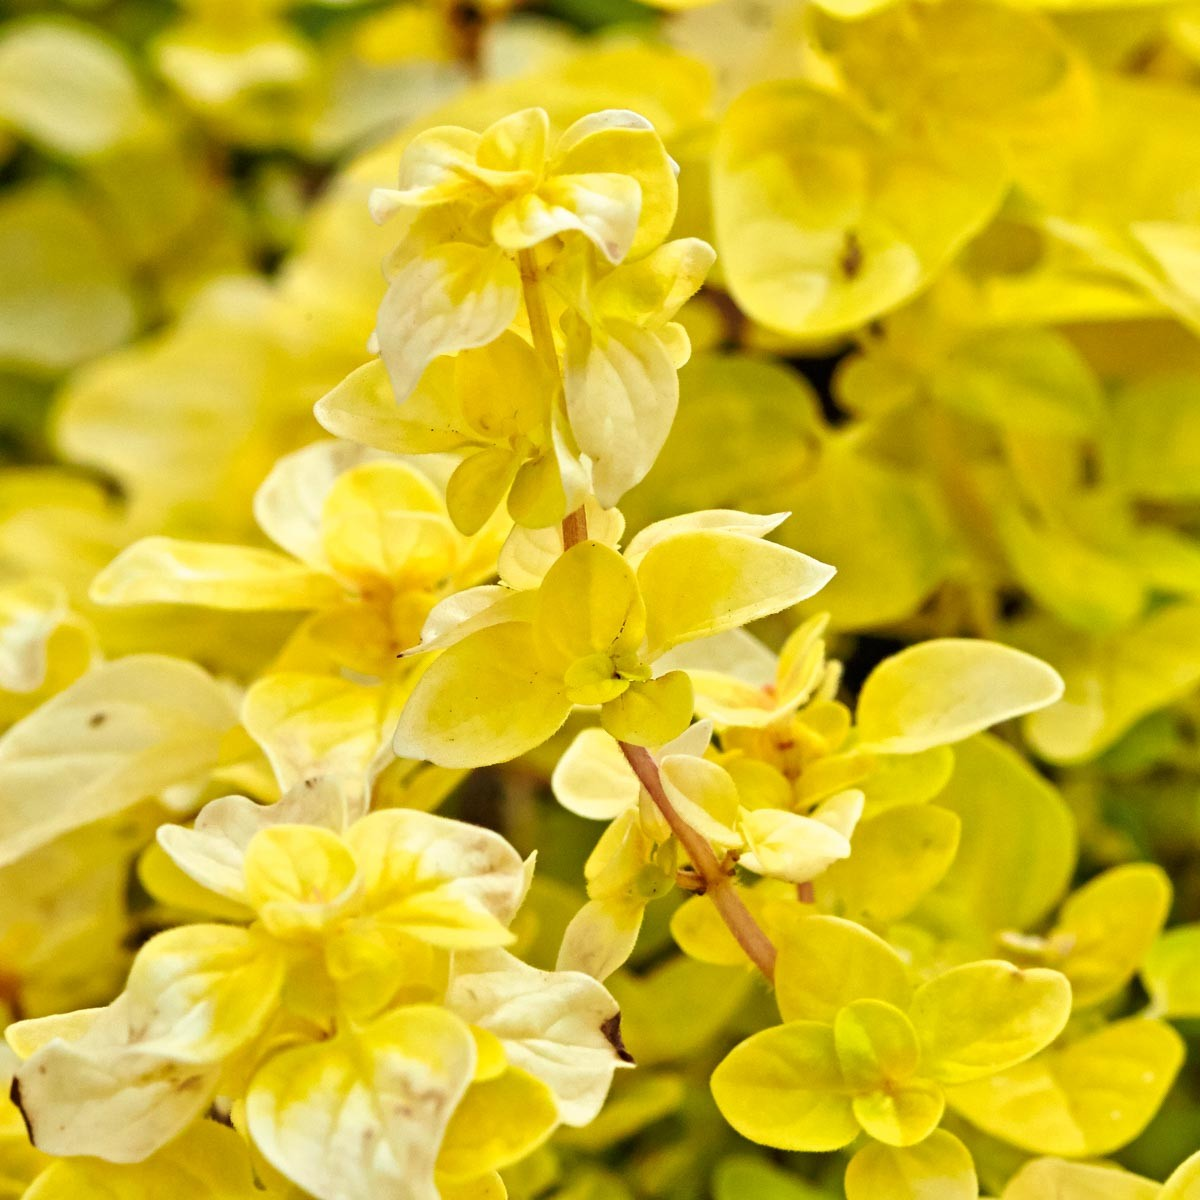 Pracht-Oregano 'Gold Nugget' winterhart, goldgelber Oregano